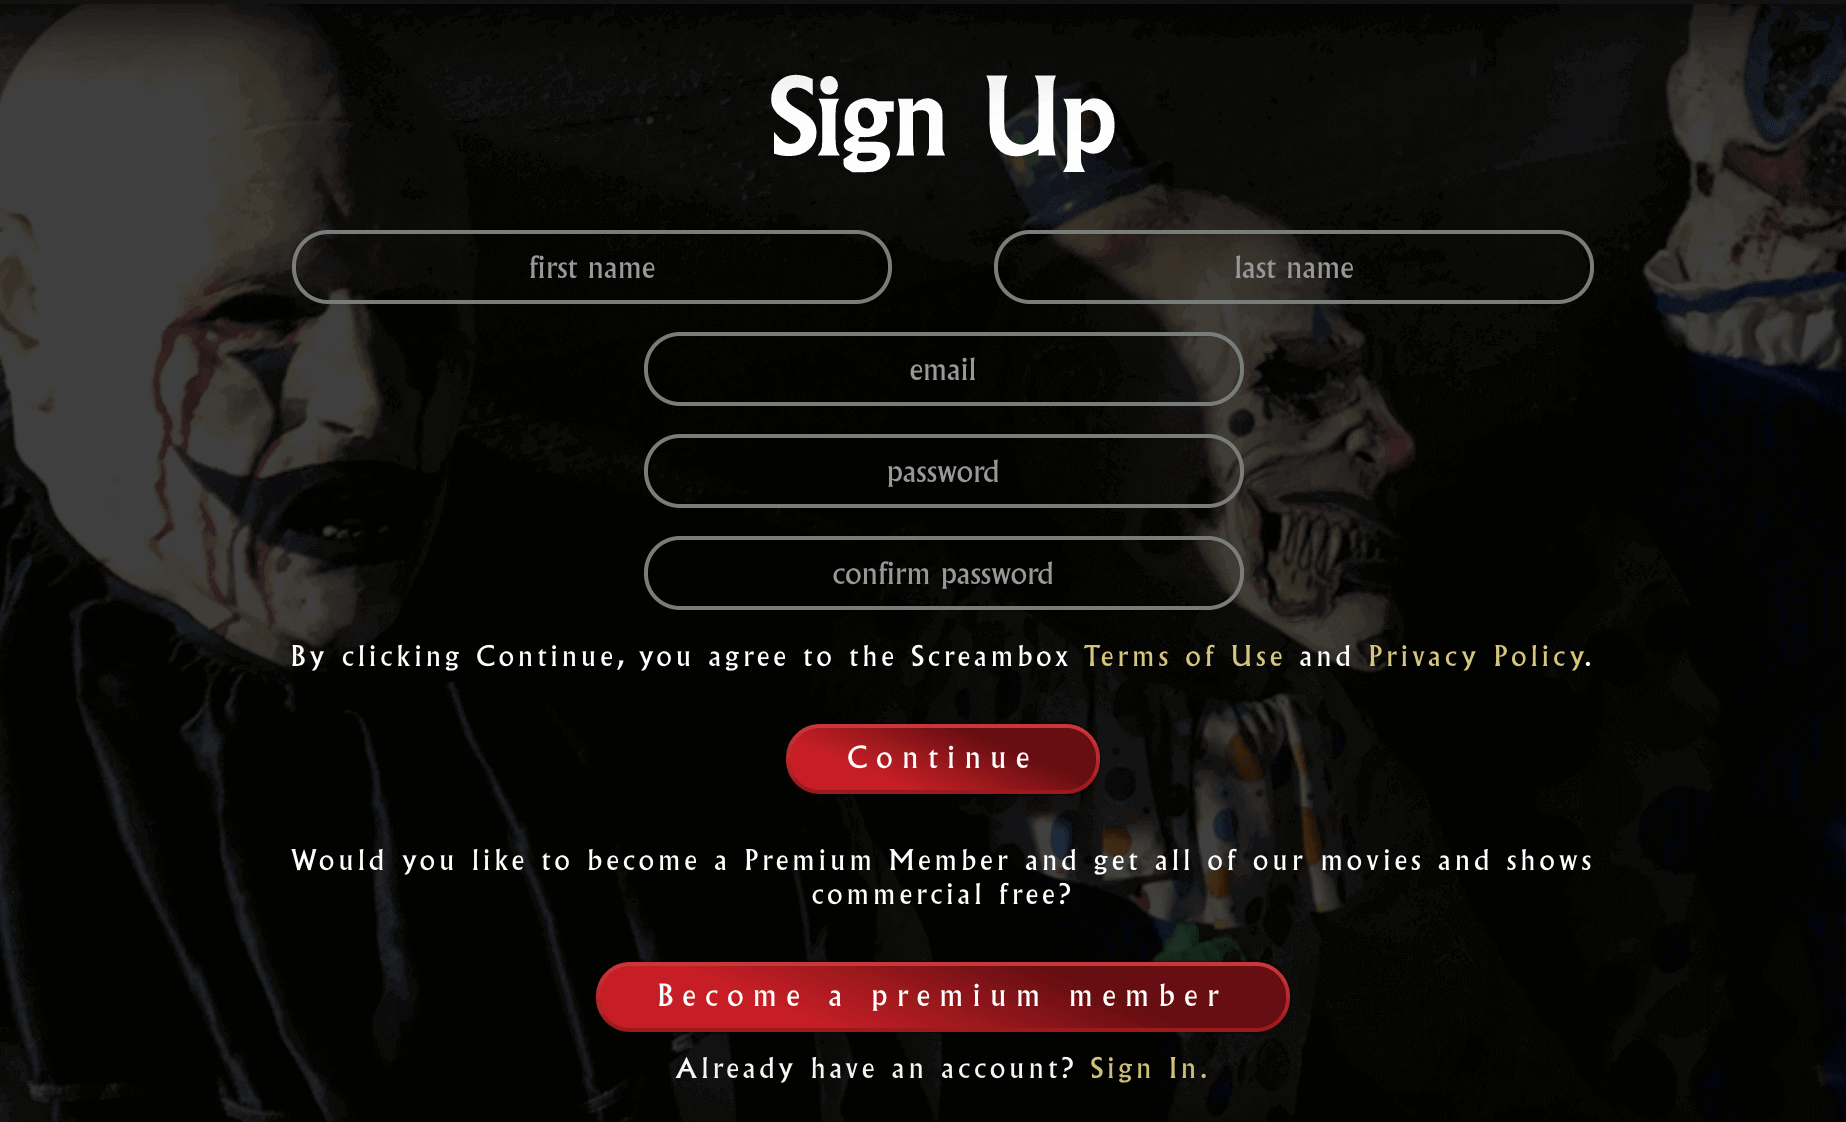 enter all the required details and click continue to get Screambox subscription